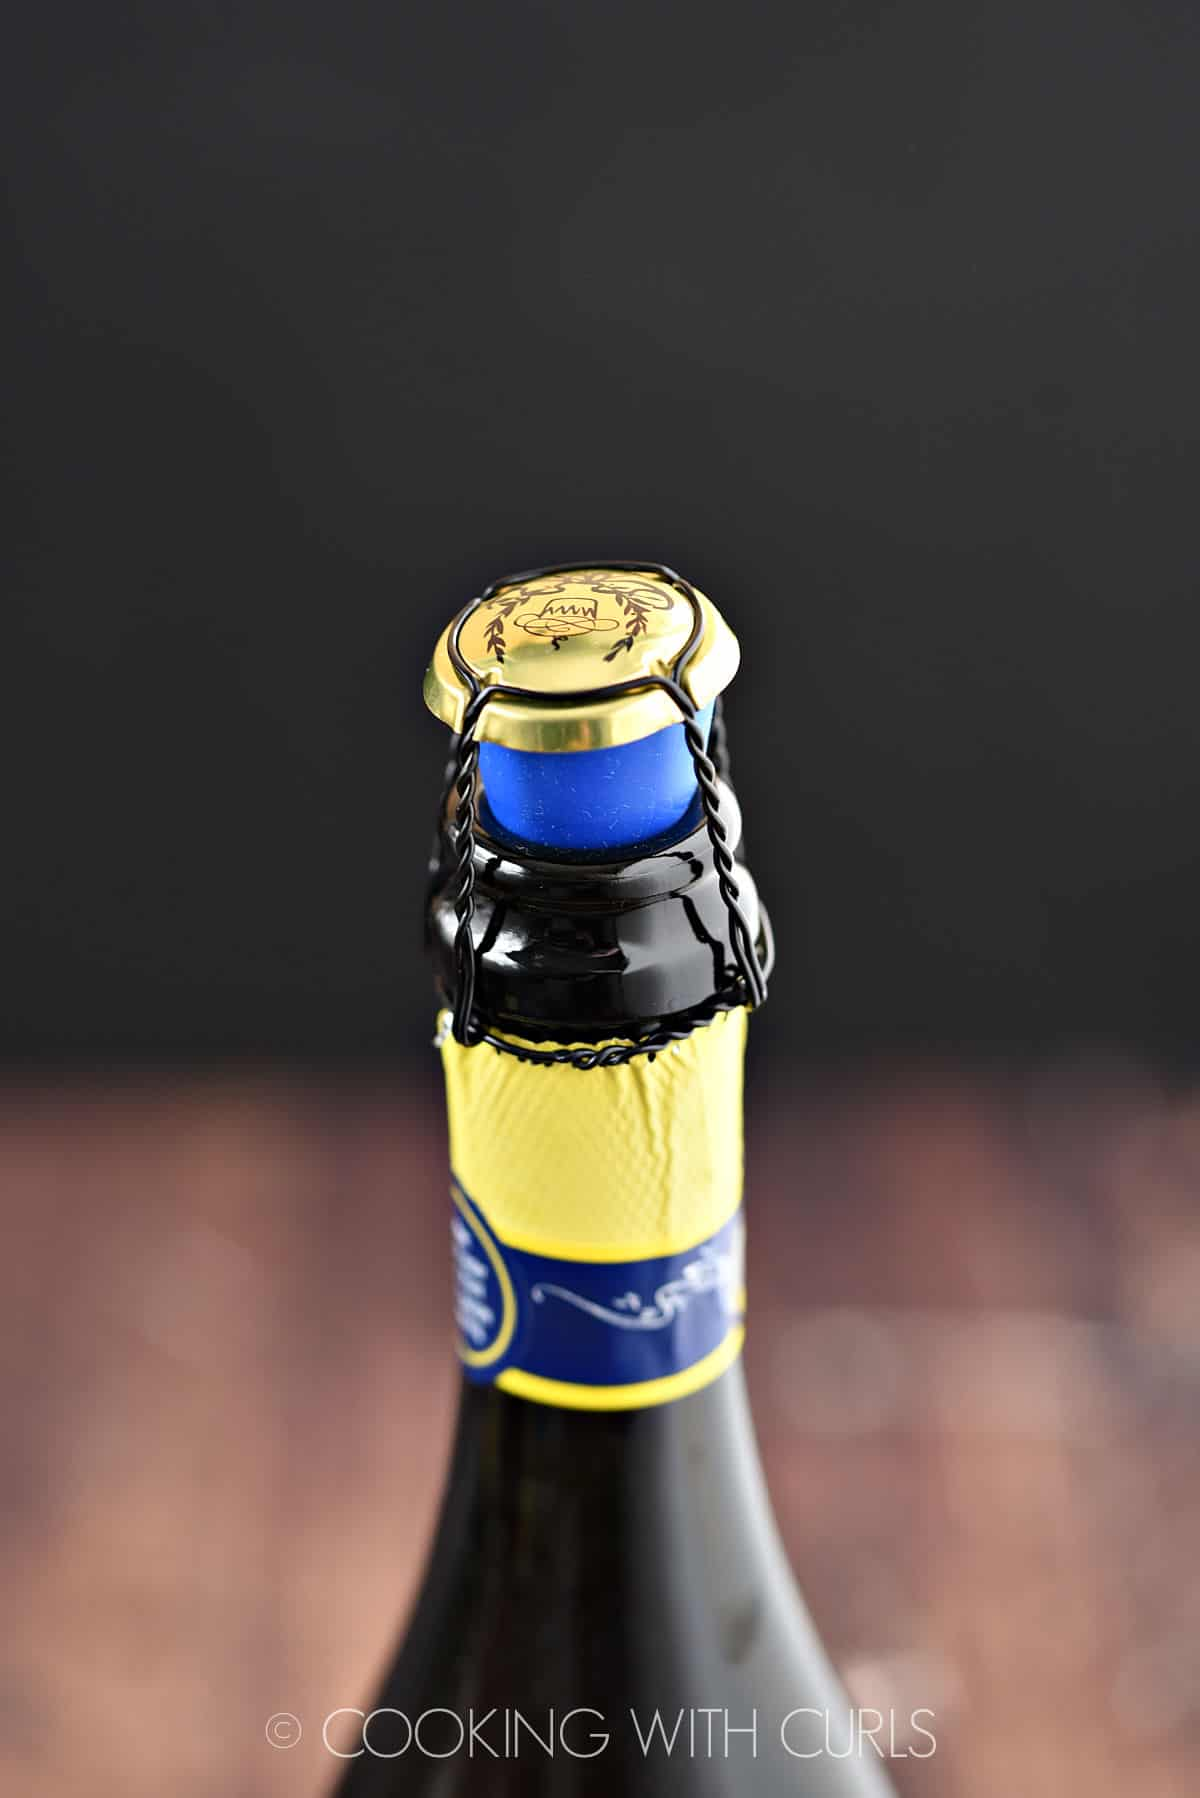 Cage and blue silicone stopper on champagne bottle.